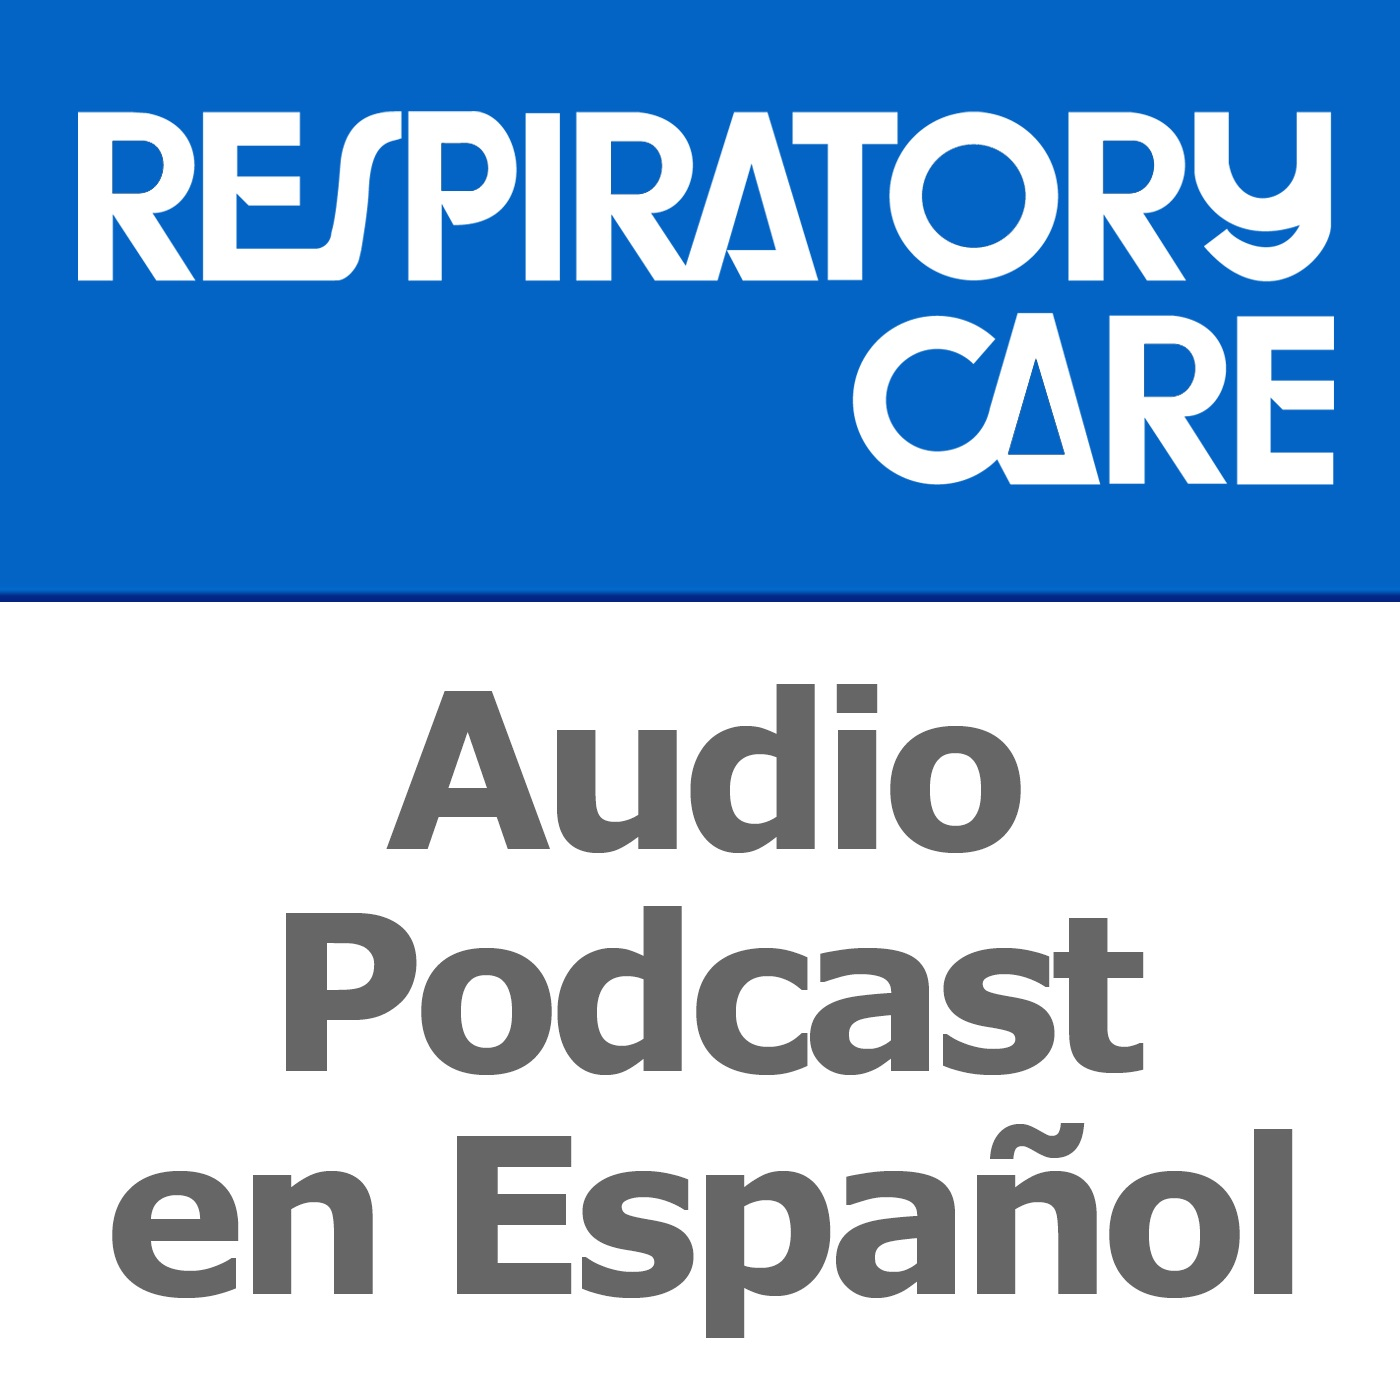 Respiratory Care Podcast en Español